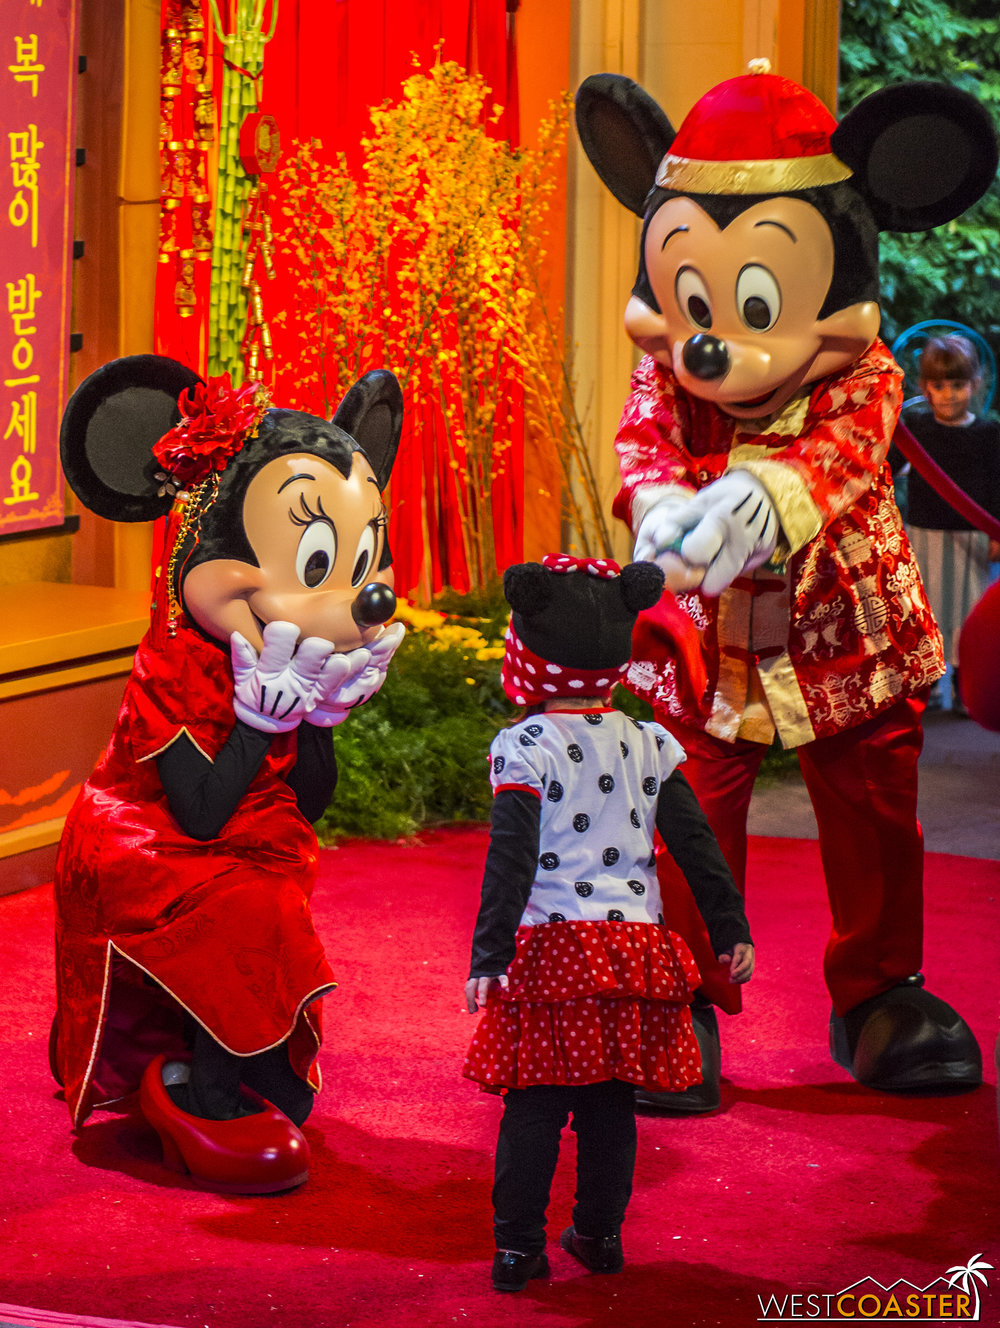 Mickey and Minnie are pleased to meet their adorable guest.